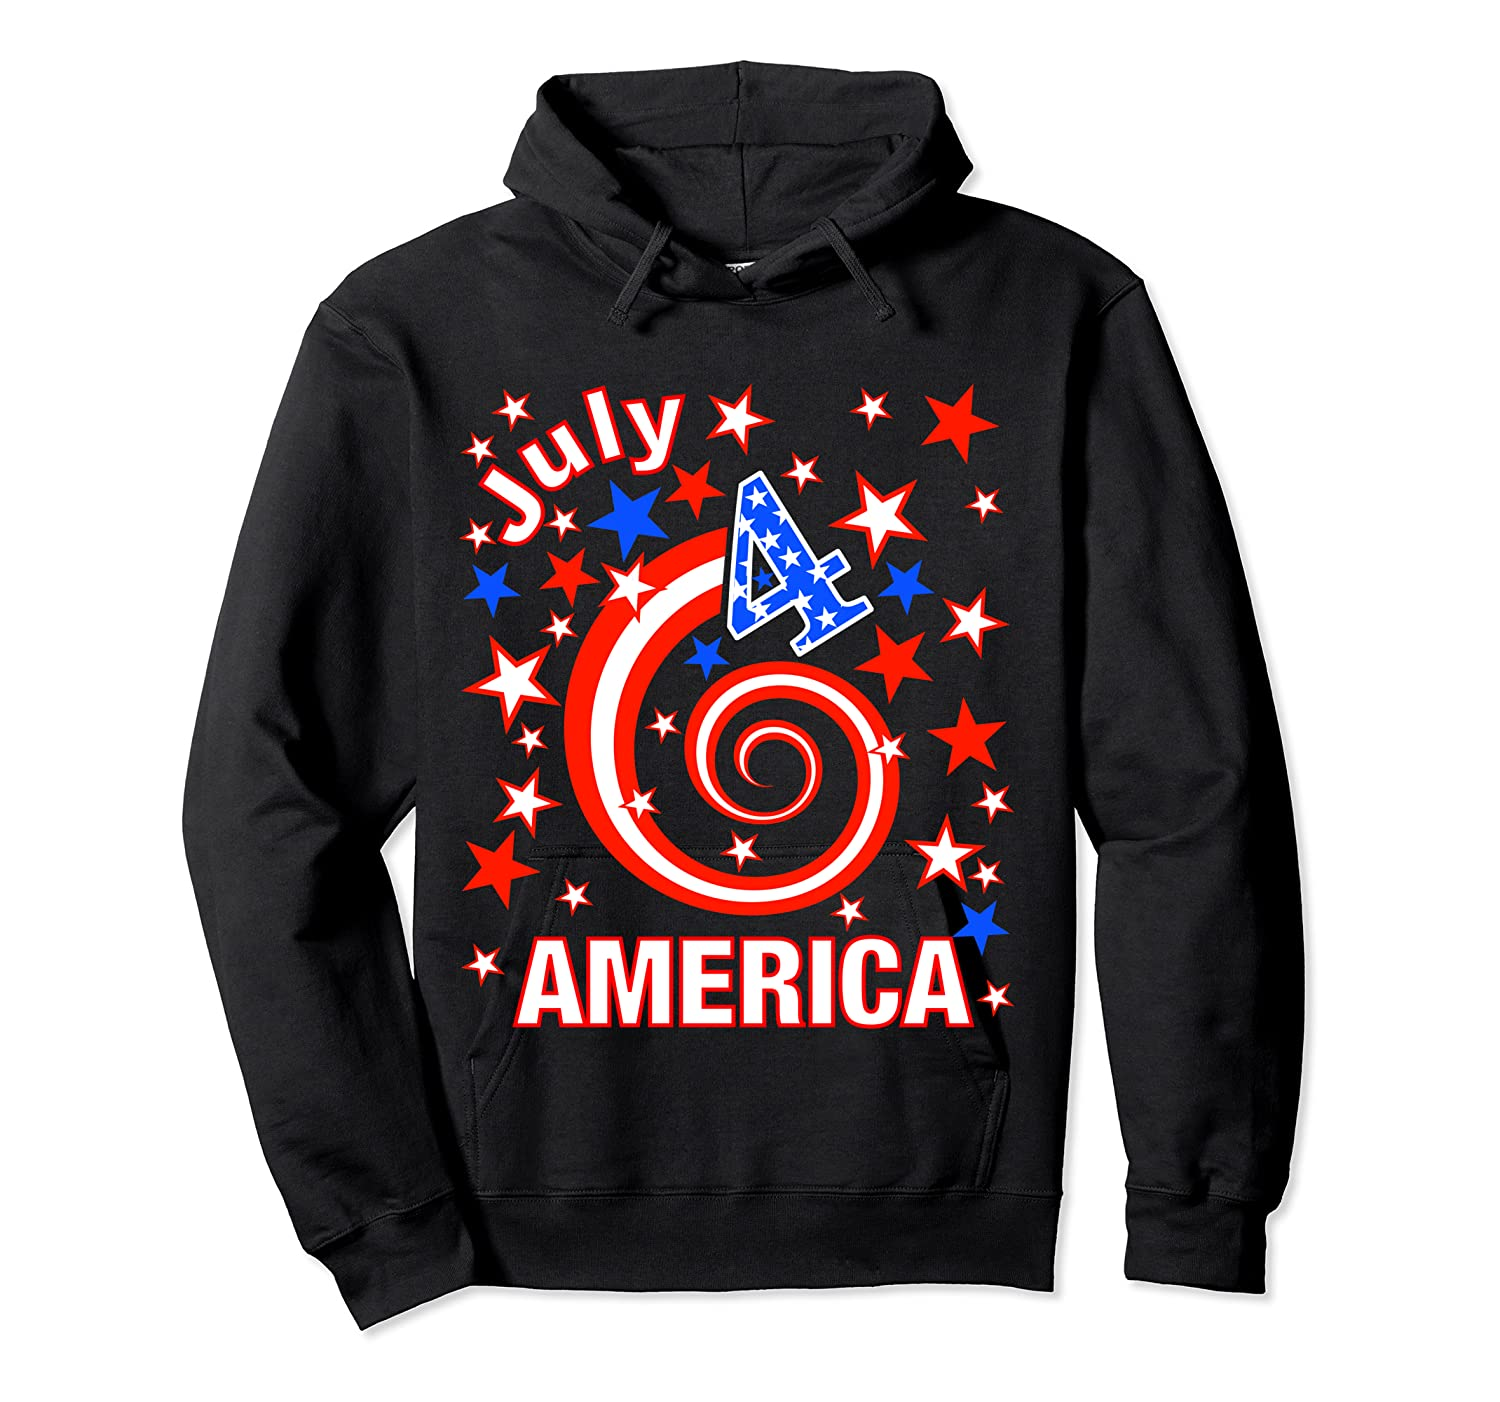 Festive 4th Of July, Independence Day Design Shirts Unisex Pullover Hoodie